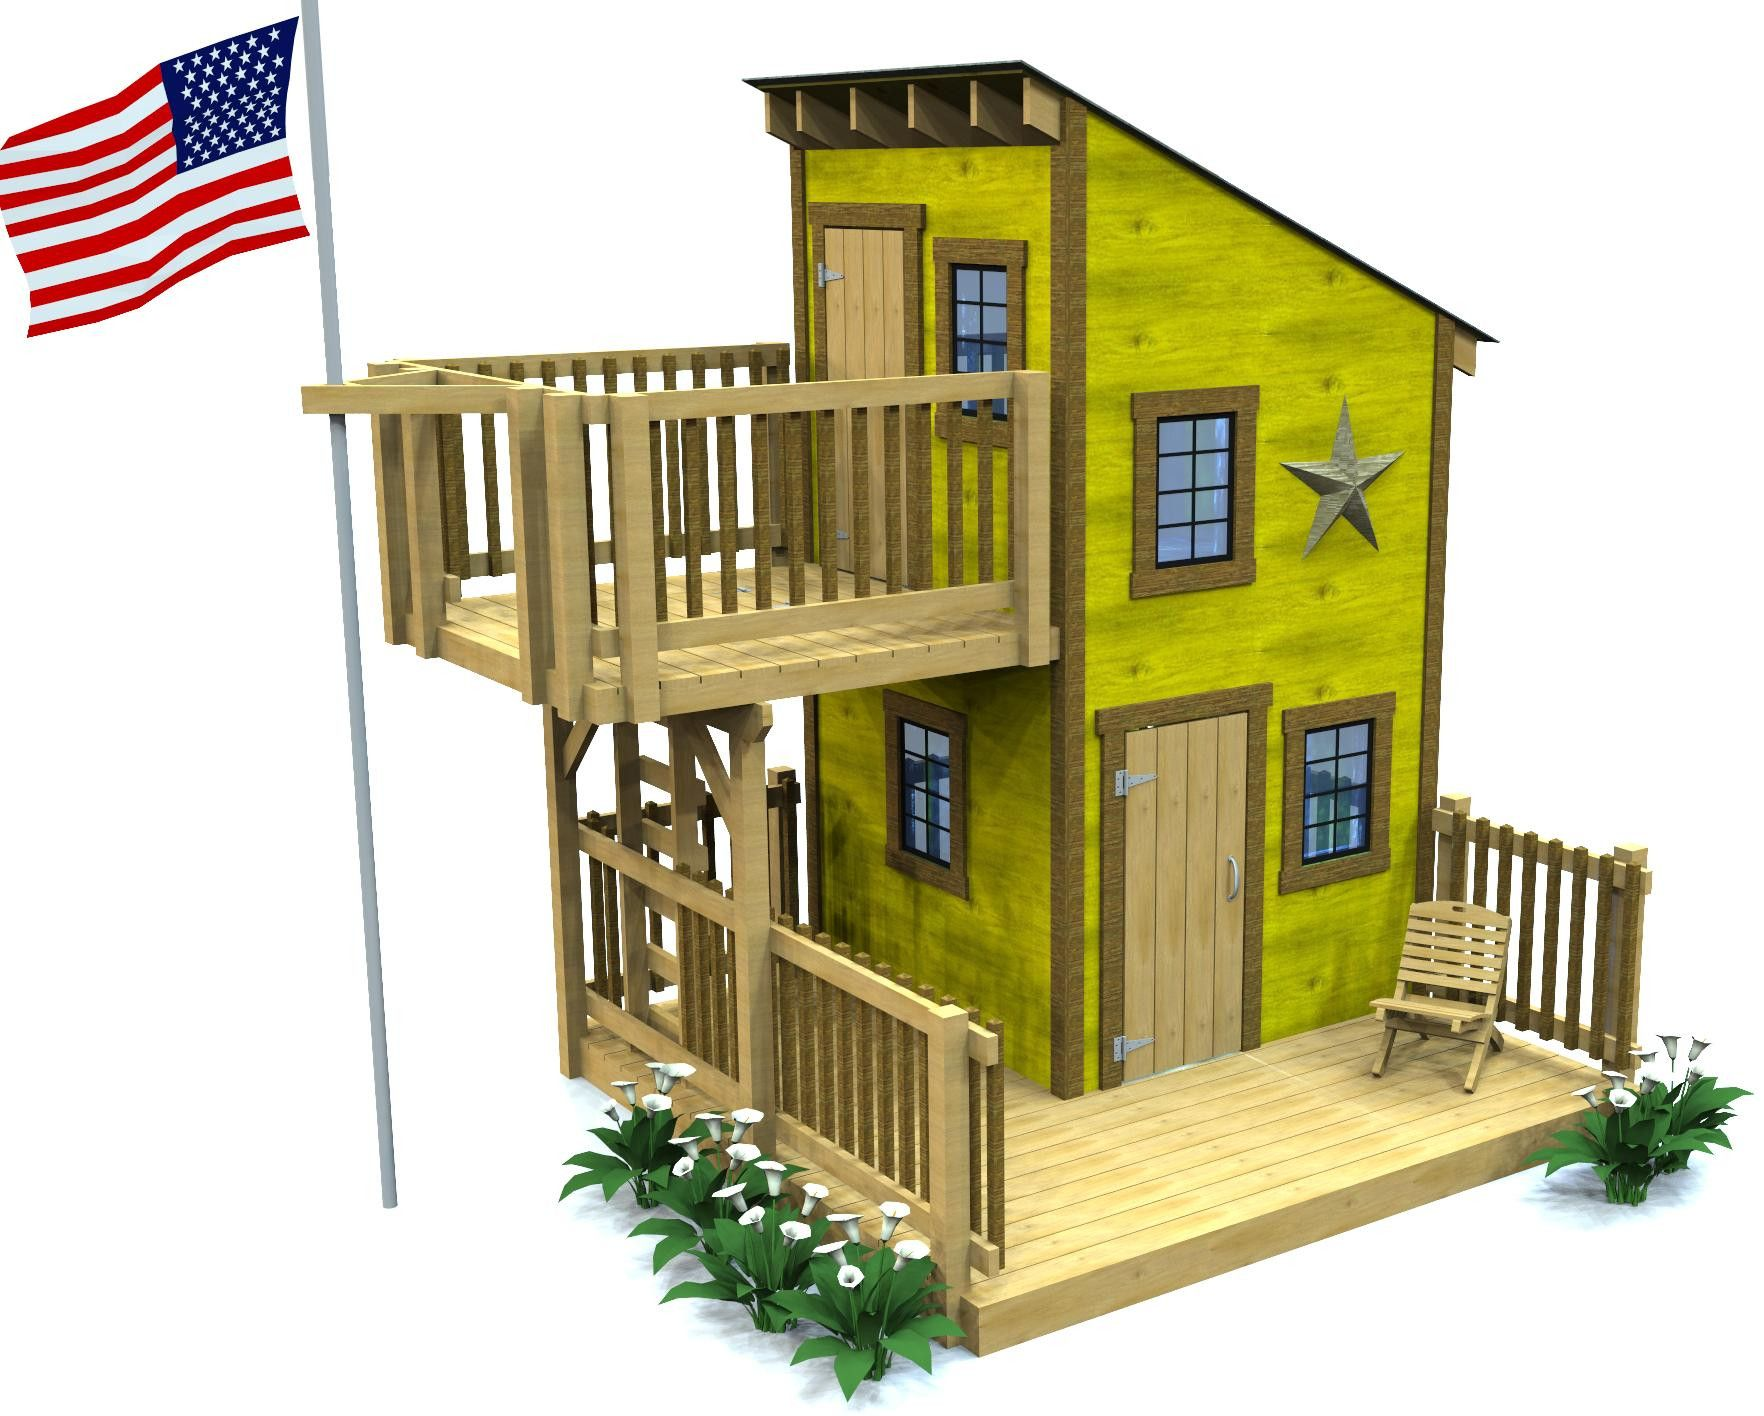 Deluxe loft clubhouse plan playhouses porch and for Blueprints for playhouse